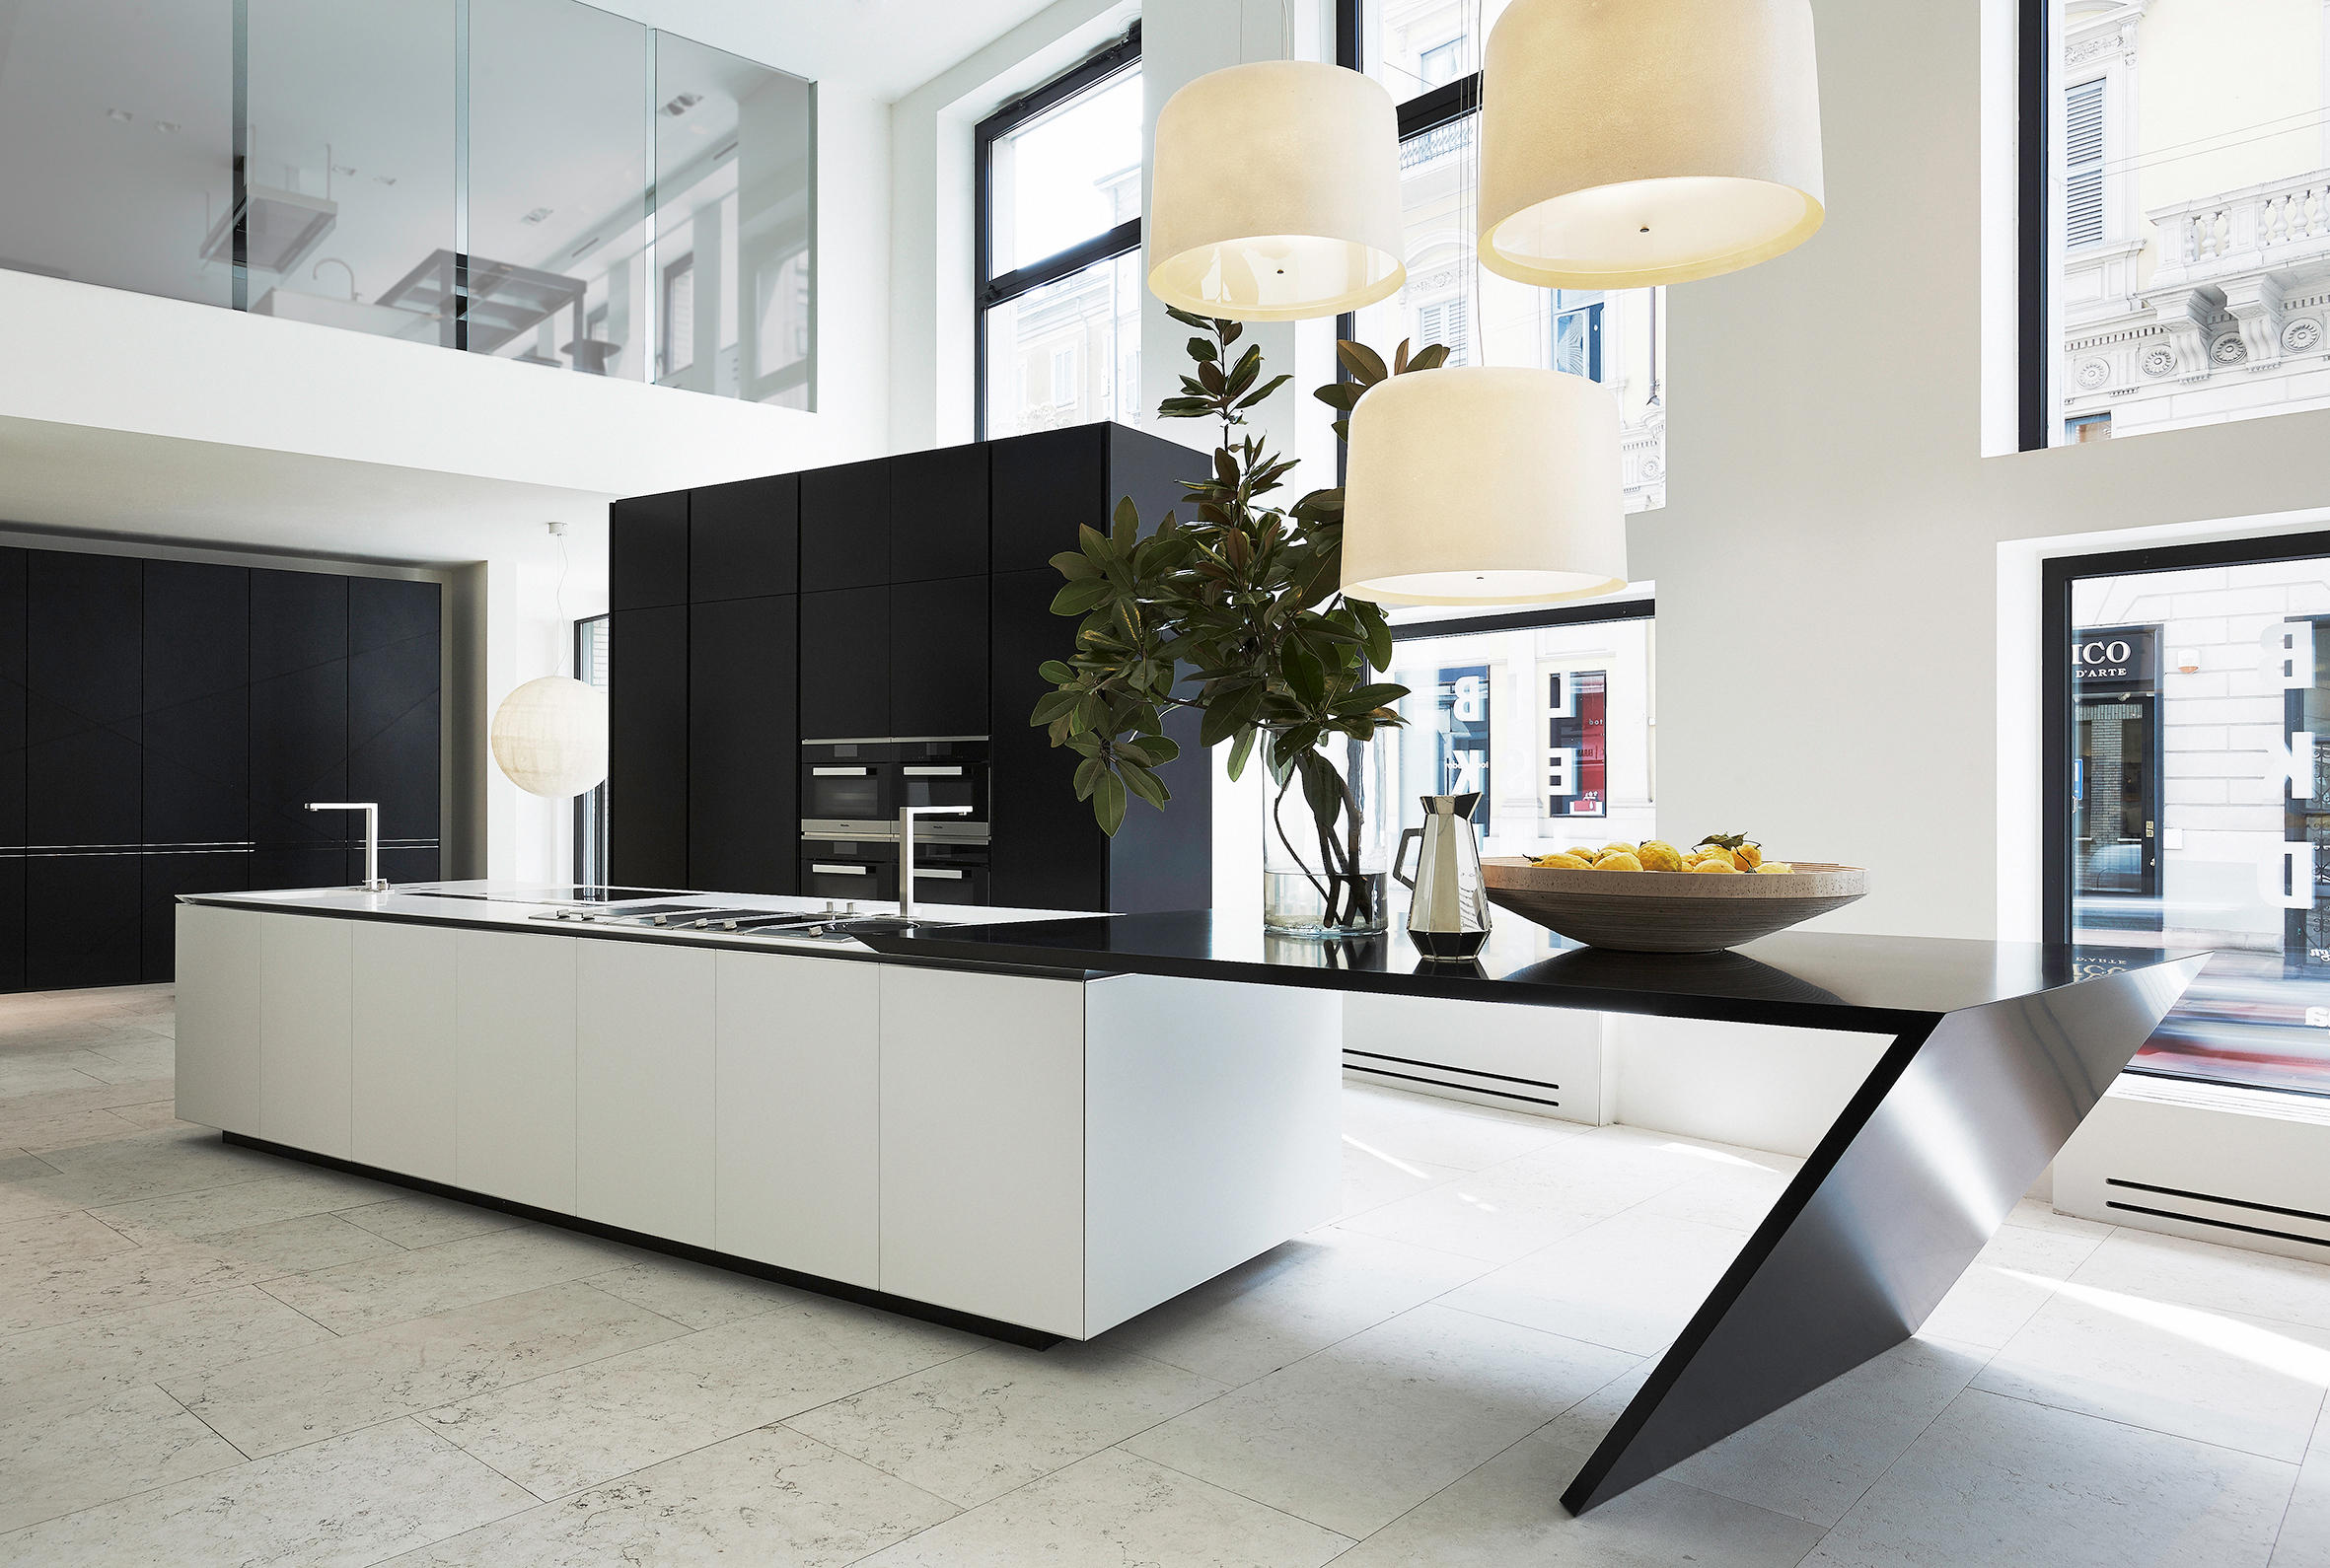 Sharp island kitchens from varenna poliform architonic for Varenna cuisine